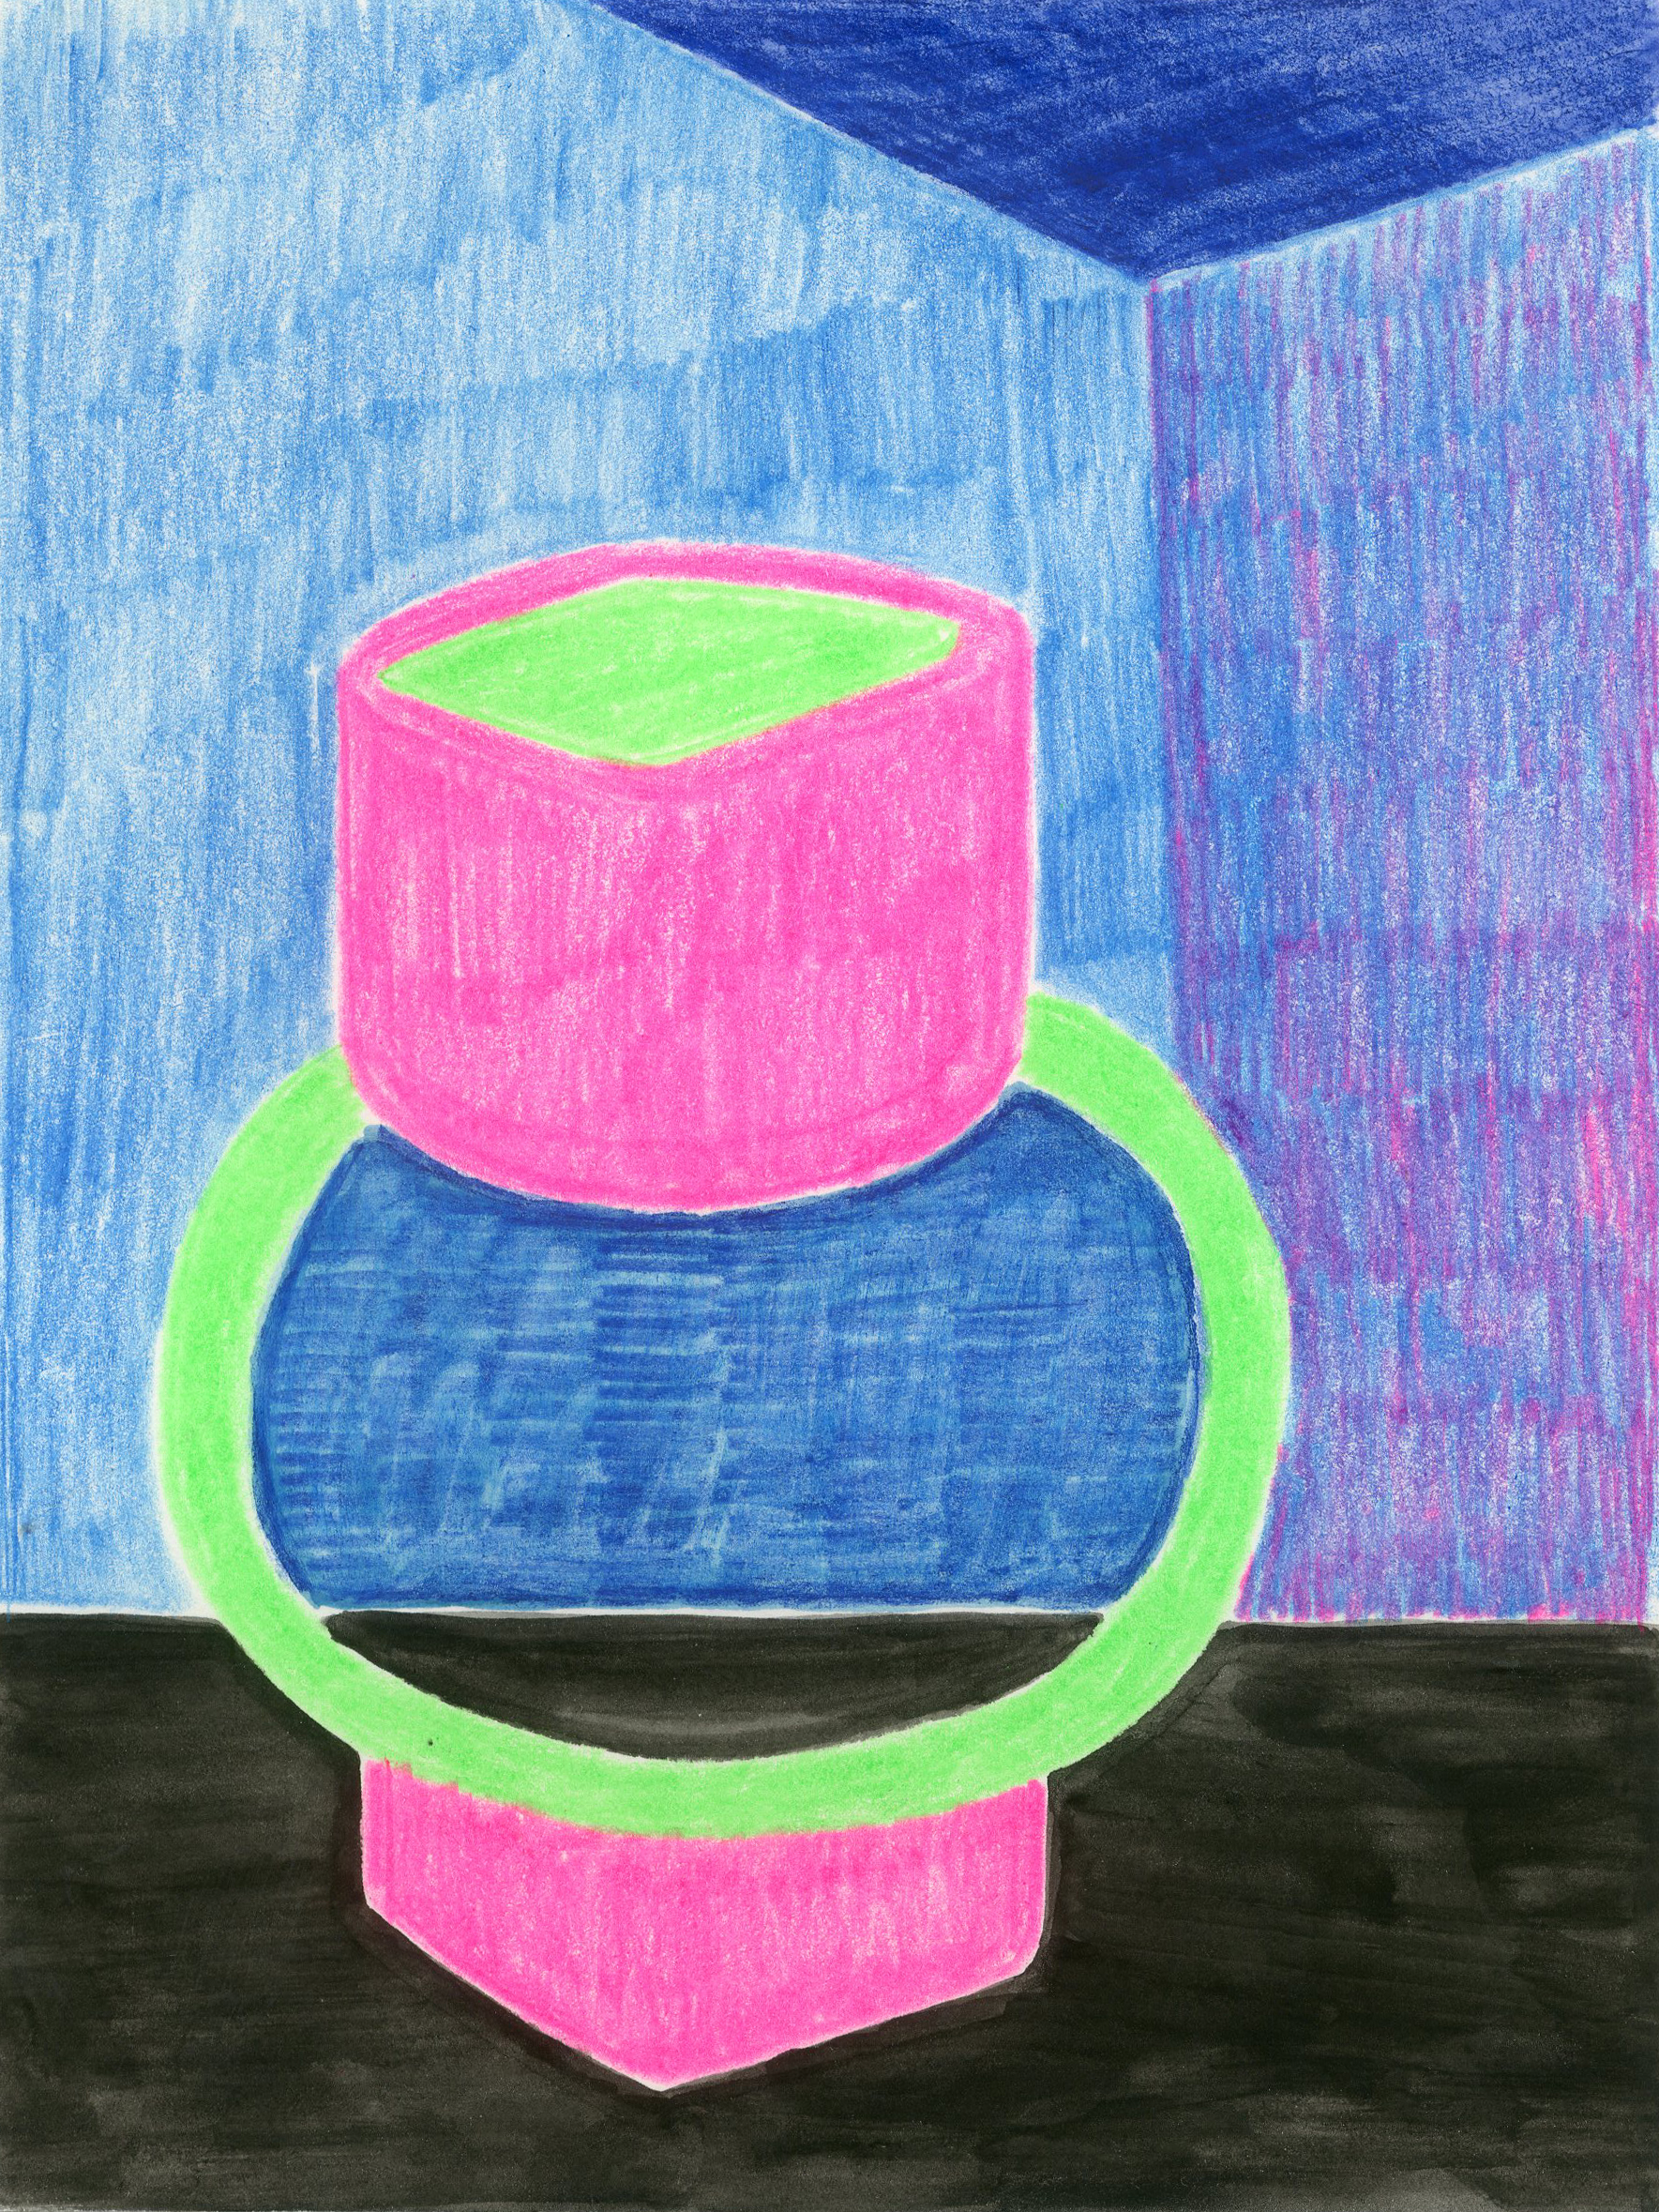 Glowing Vessel - Colored Pencil and Water Color